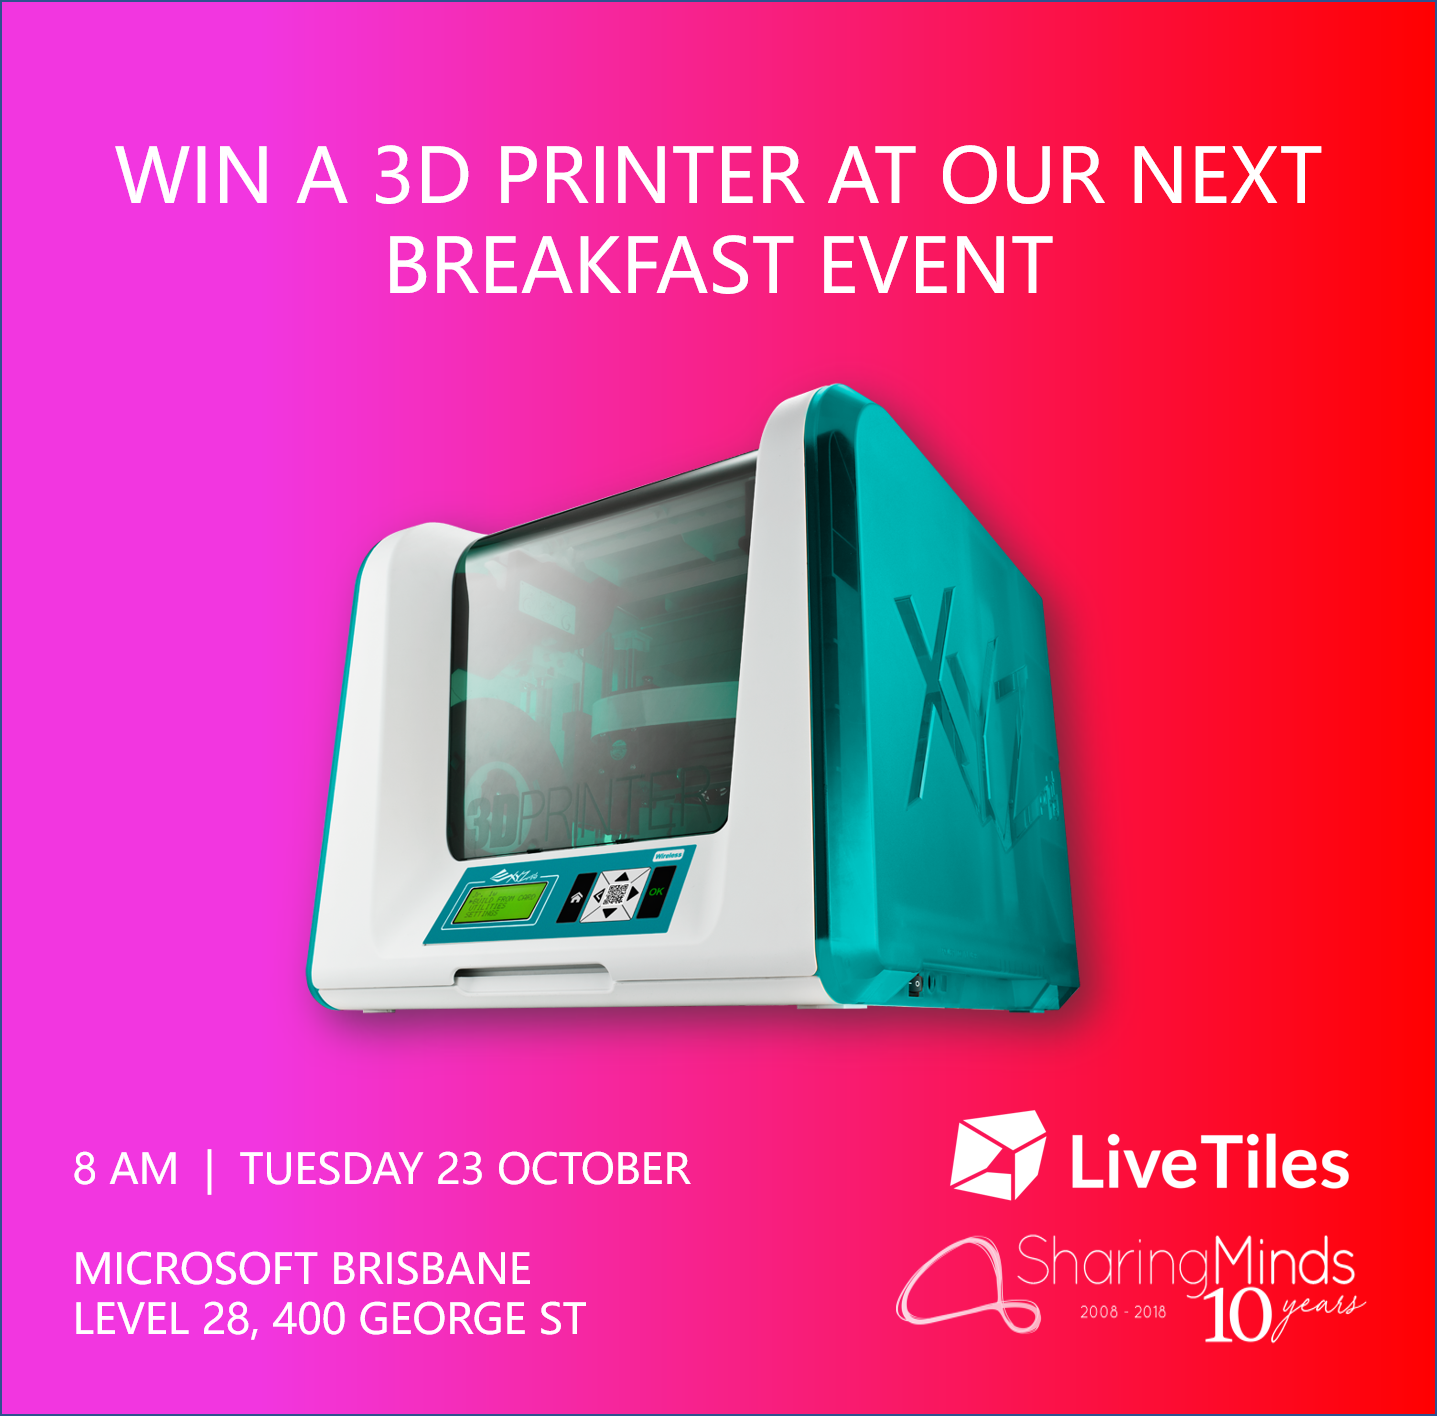 Giveaway 3D Printer - LiveTiles Sharing Minds